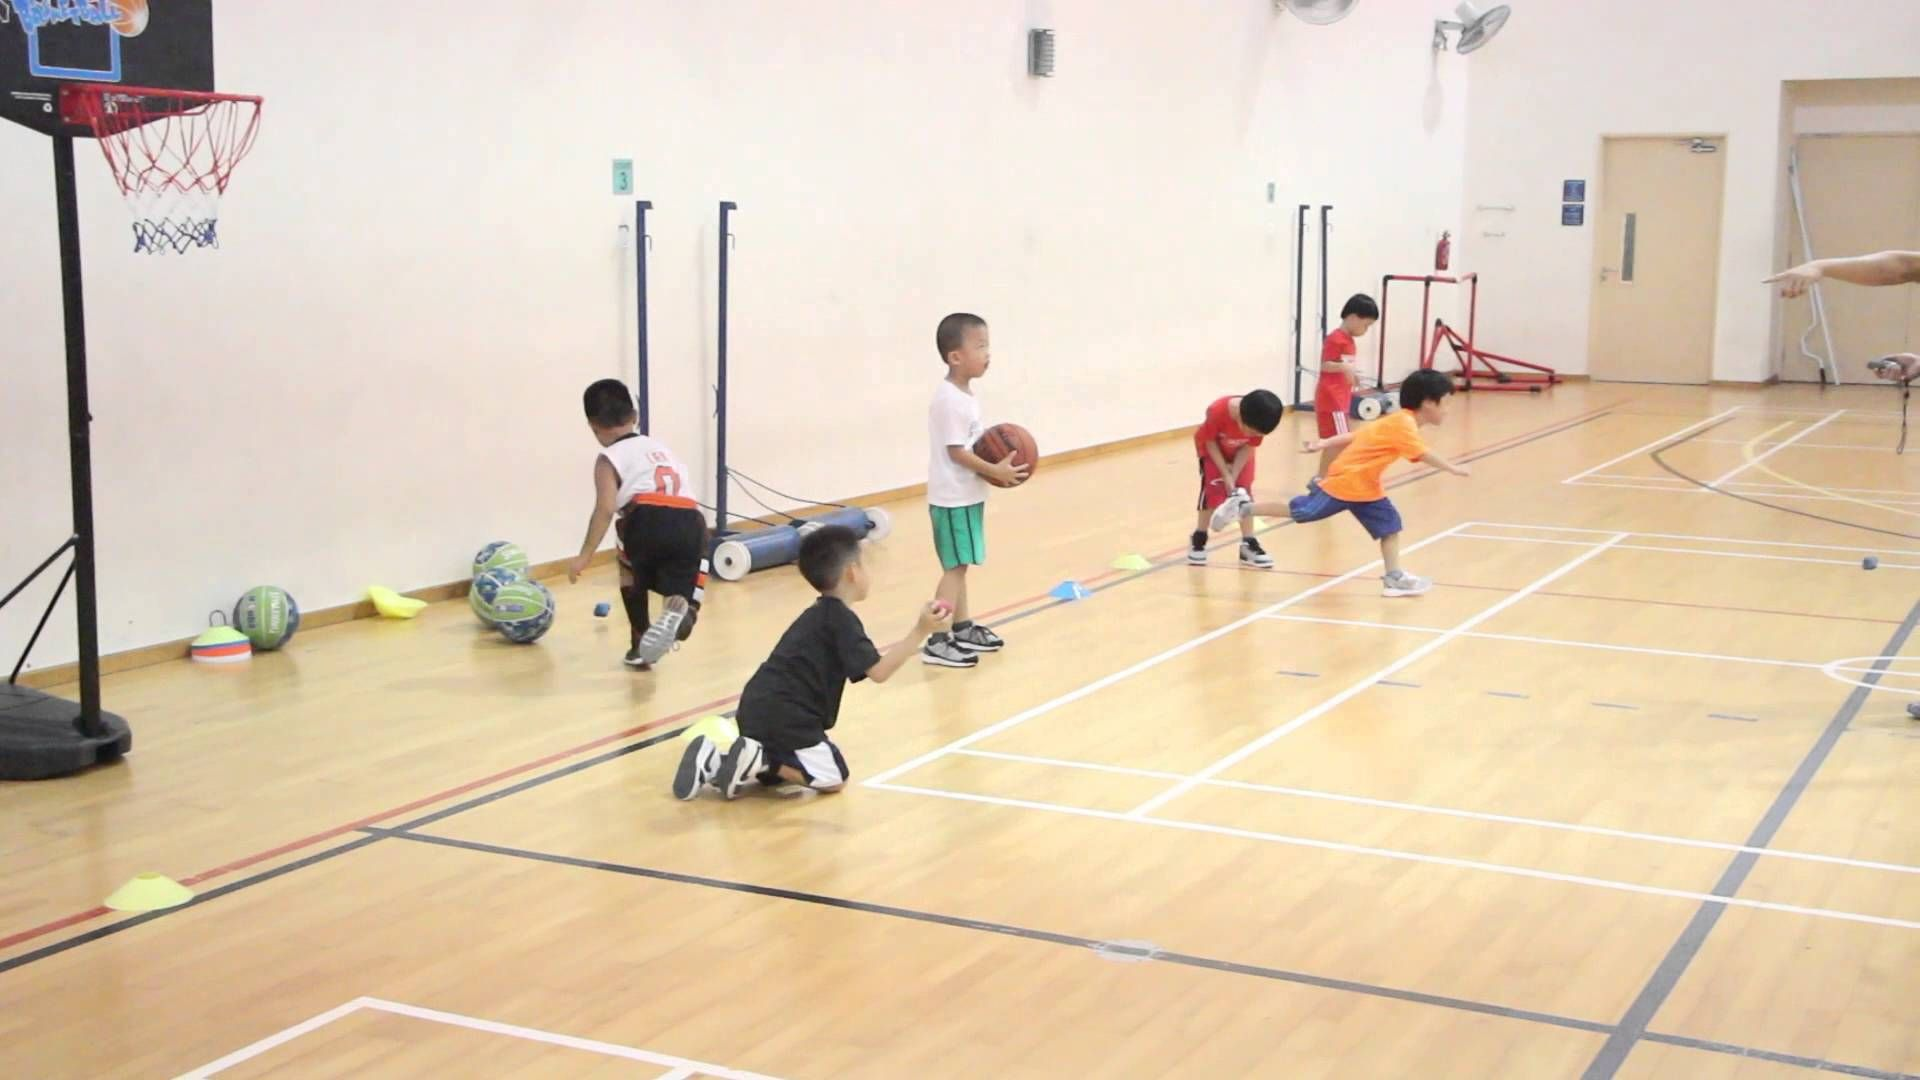 Basketball Training Lesson Singapore Basketball Startyoung Sgbasketball Singaporebasketball Sgbball Bask Basketball Academy Sports Picks Basketball Drills